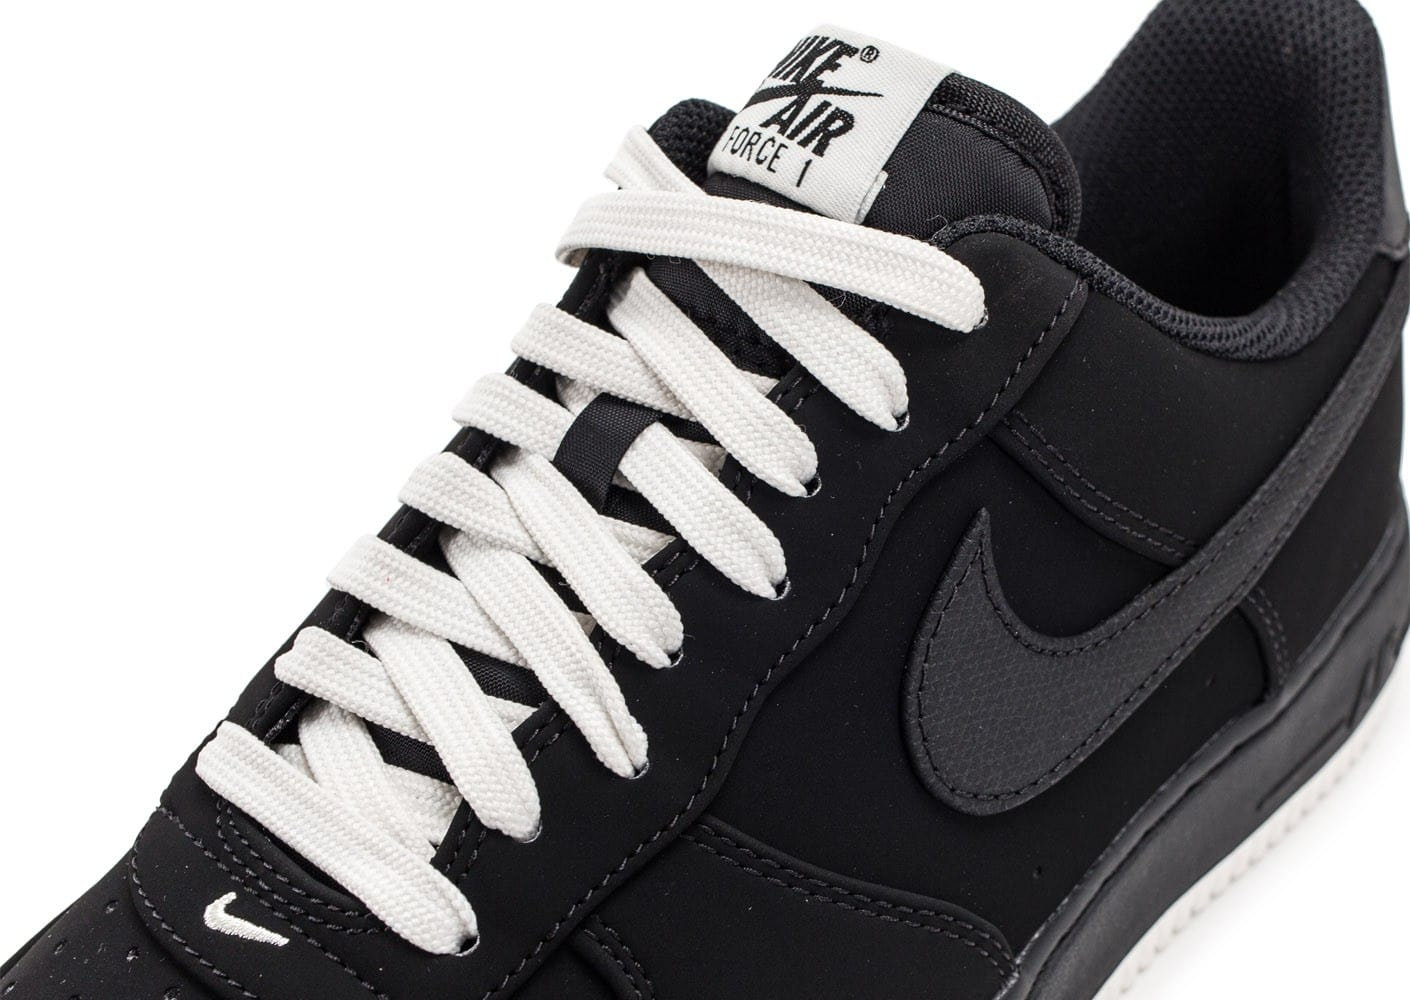 Sail Low Homme 1 Baskets Nike Chaussures Force Chausport Air Black DWEH92I